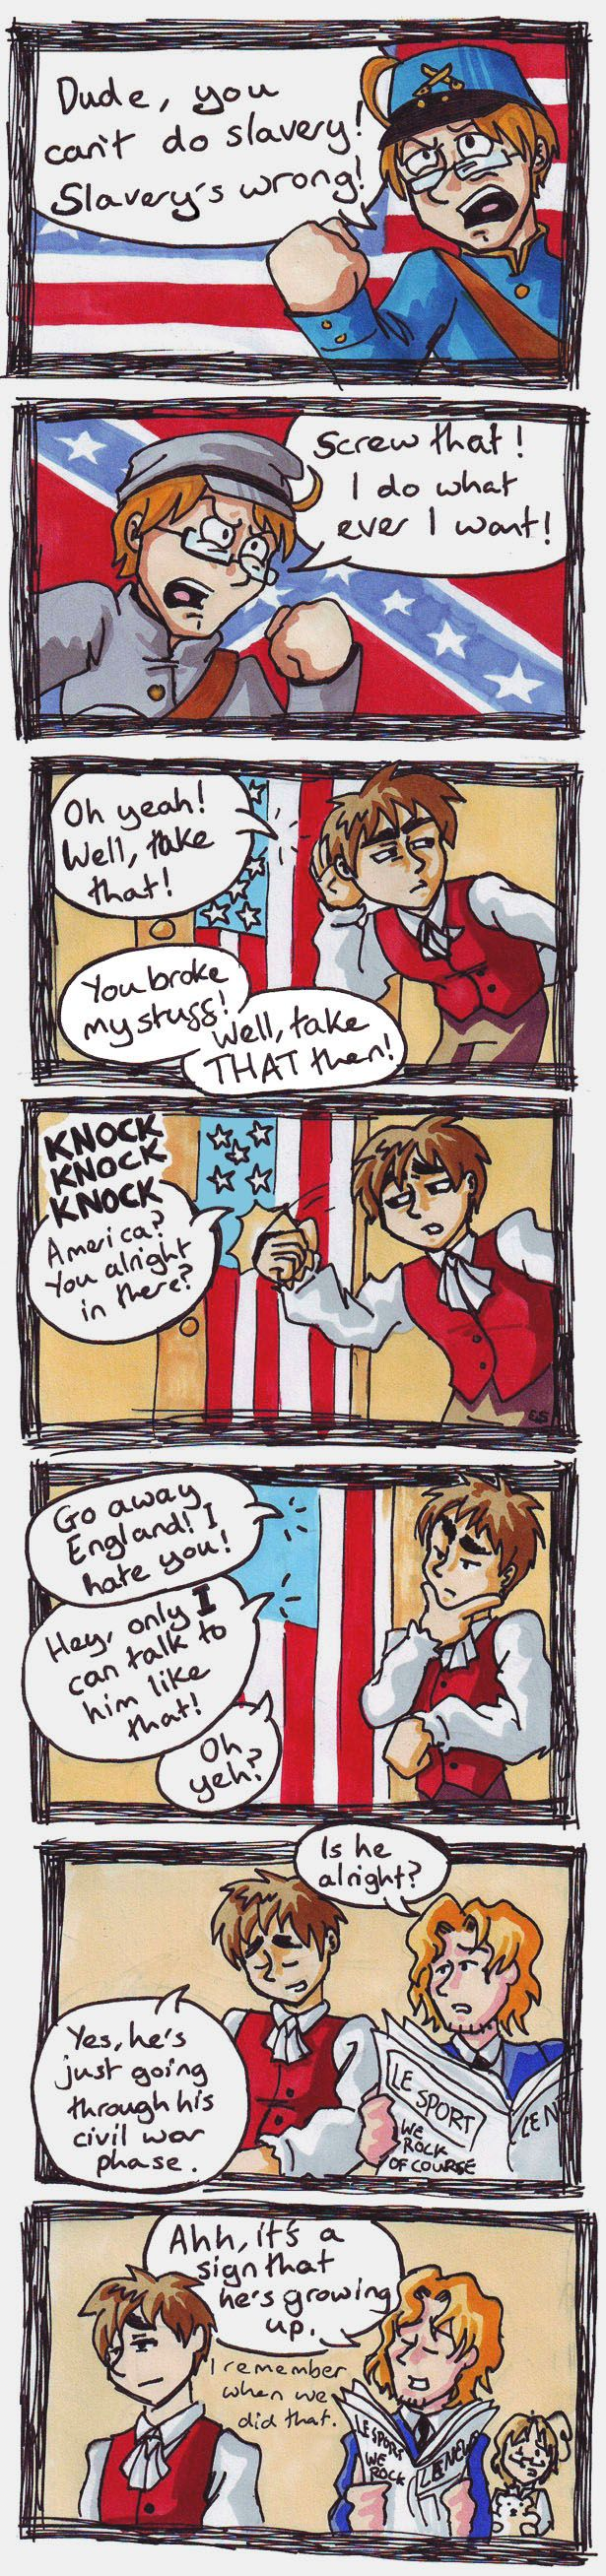 Hetalia - Civil Warfare by Raax-theIceWarrior.deviantart.com on @deviantART Lol, Canada could have a civil war if he really wanted to.